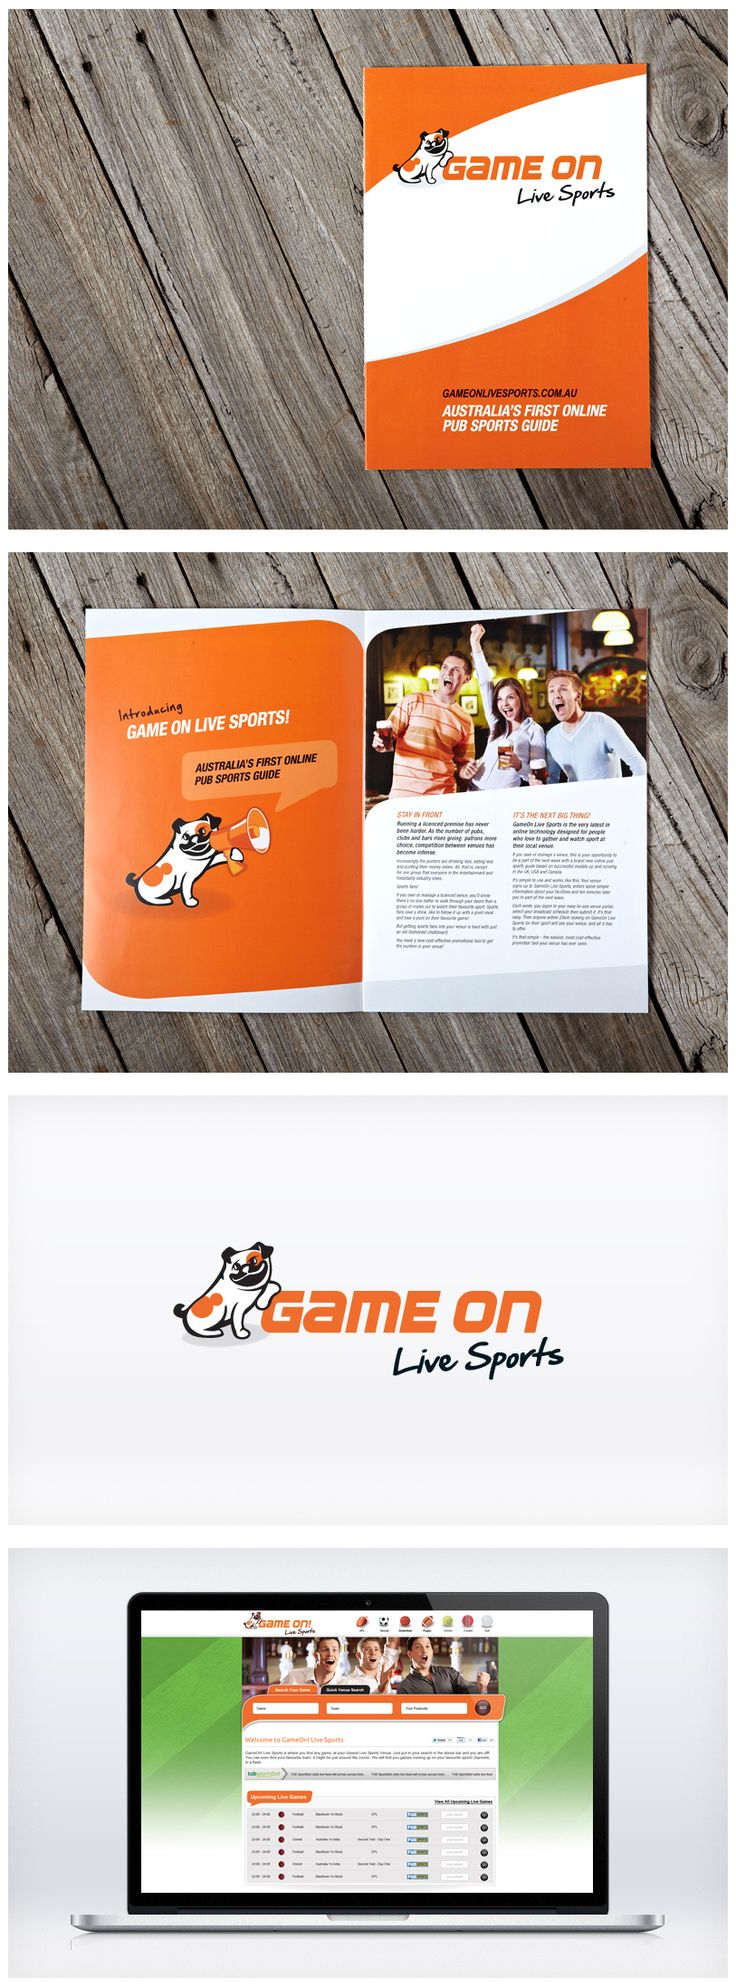 #GameOn Live Sports was a new business launching an app for sports fans to find licenced venues showing their favourite game. What they needed was an iconic brand and marketing look to engage fans in this vibrant market. Liquid created a strong brand featuring a memorable brand hero and striking orange and black template. Helping the owner with a launch strategy and promotional material, Liquid injected fun and freshness into this online start-up.